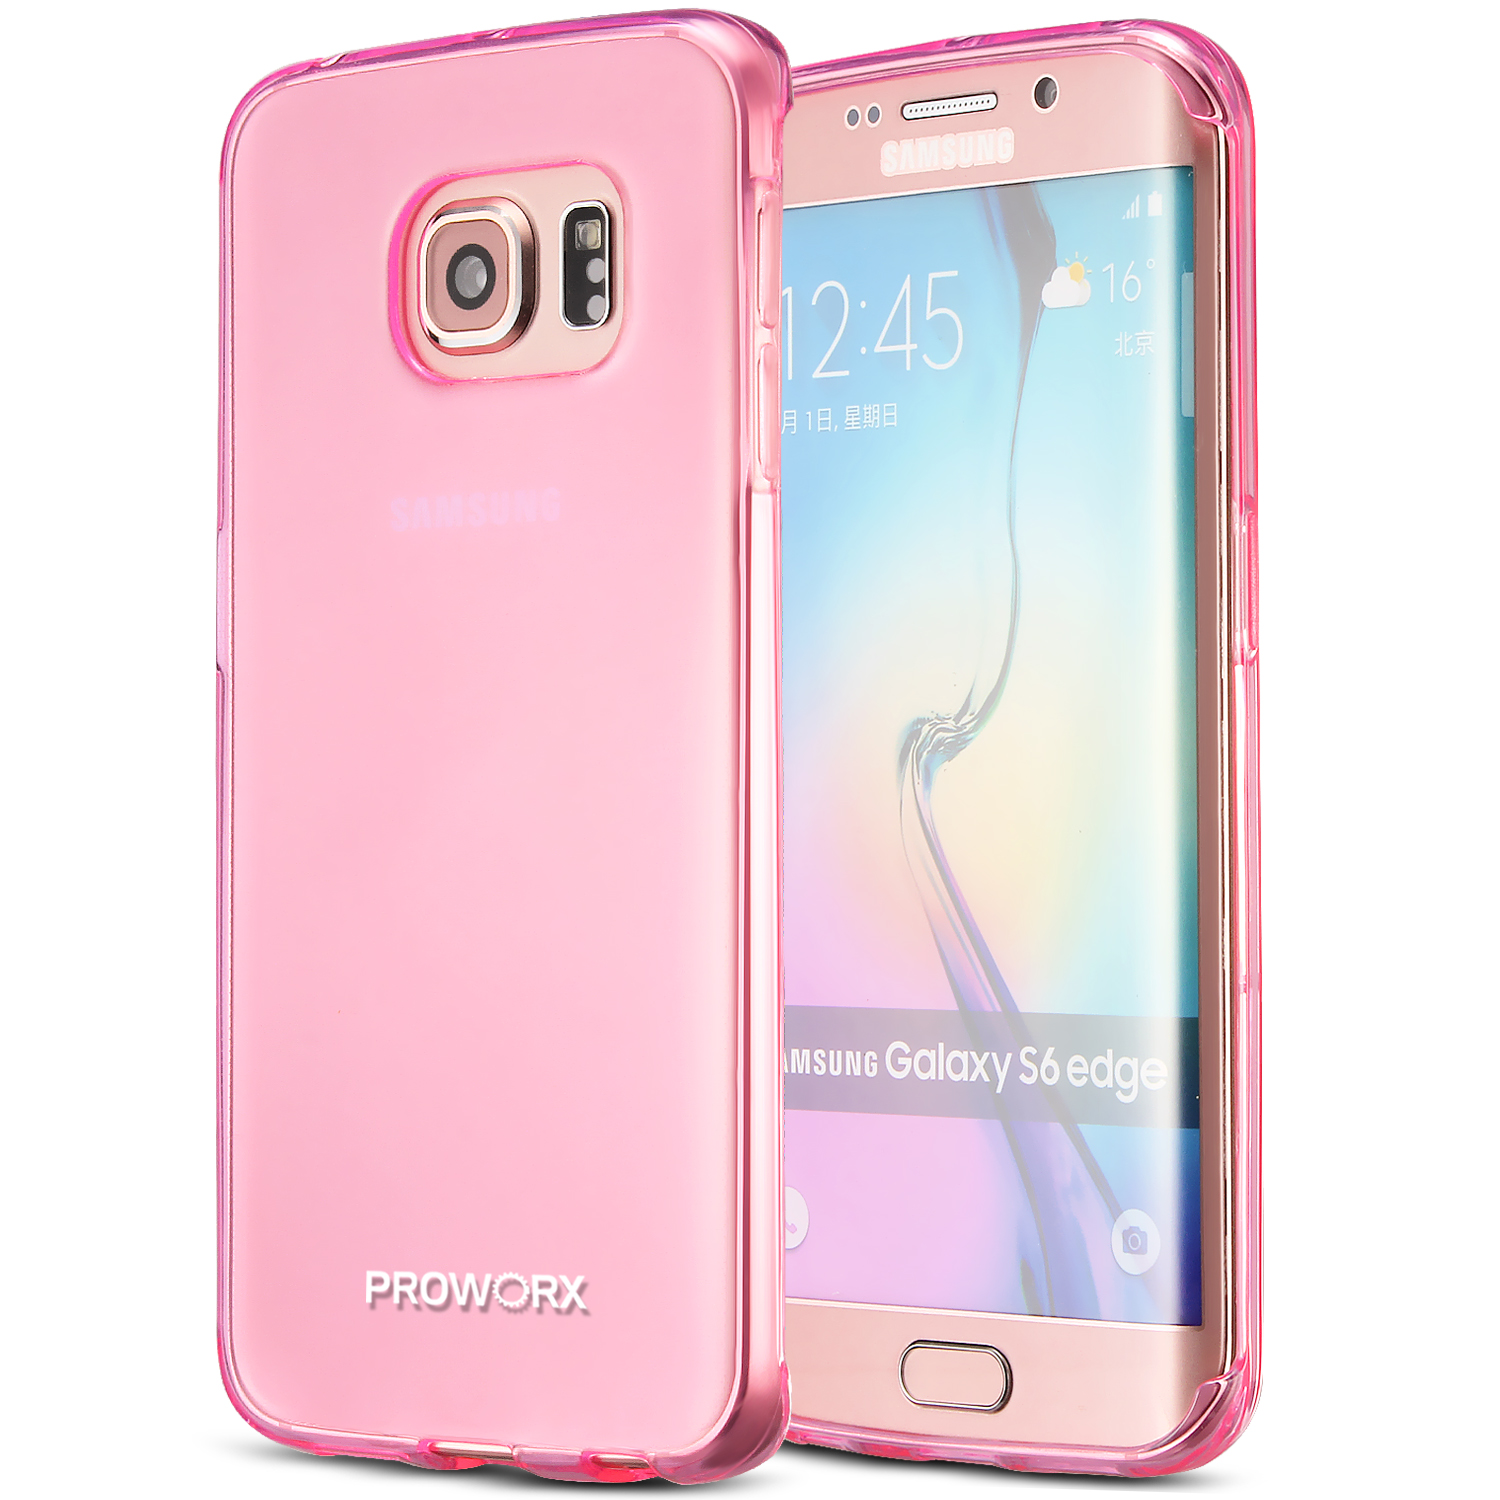 Samsung Galaxy S6 Edge Hot Pink ProWorx Ultra Slim Thin Scratch Resistant TPU Silicone Case Cover